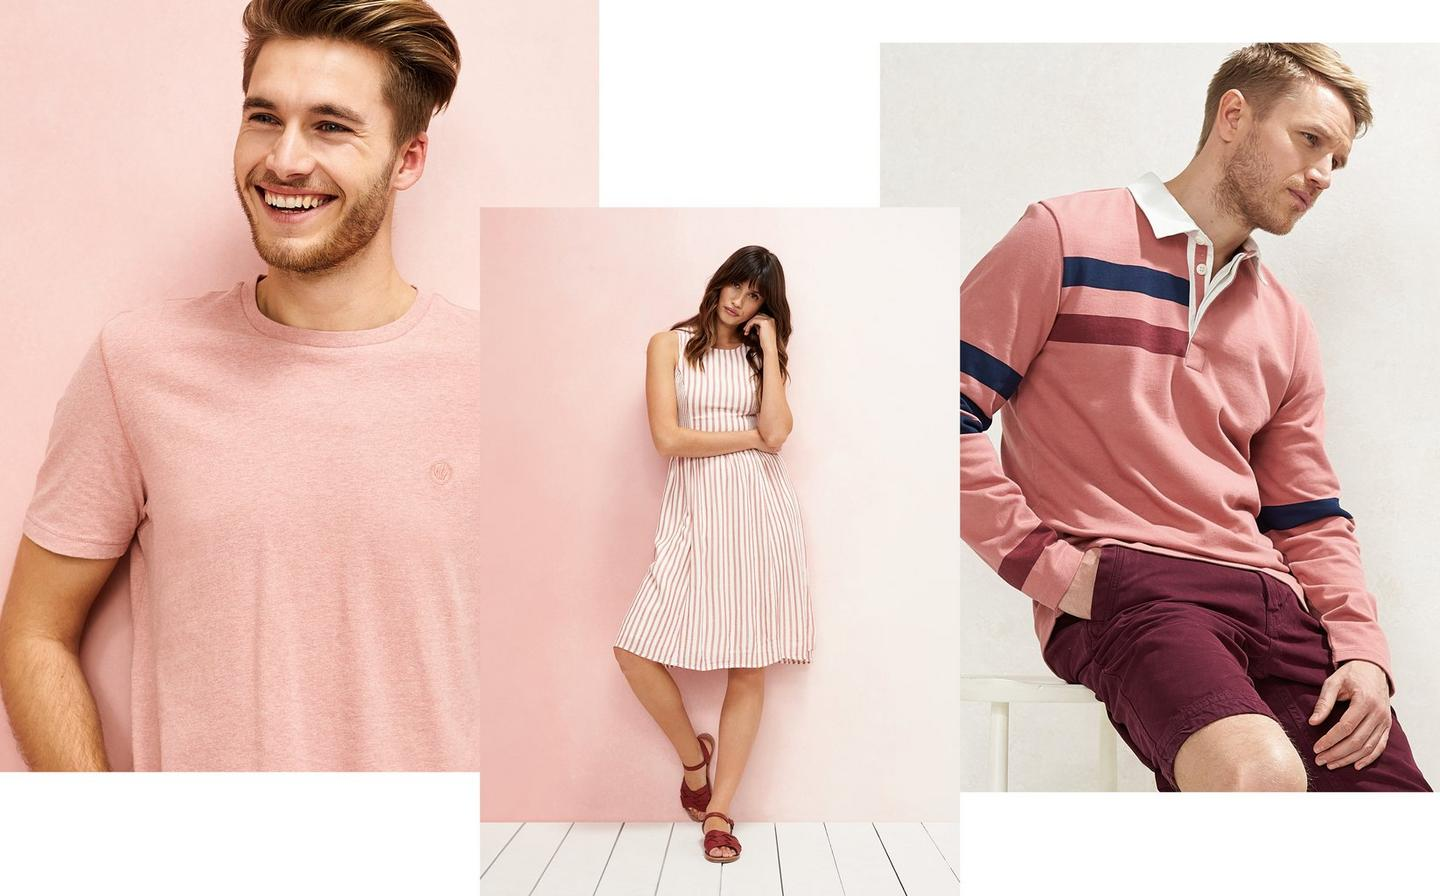 A selection of FatFace clothes available at FatFace, from a plain t-shirt to a stripe dress, worn on models